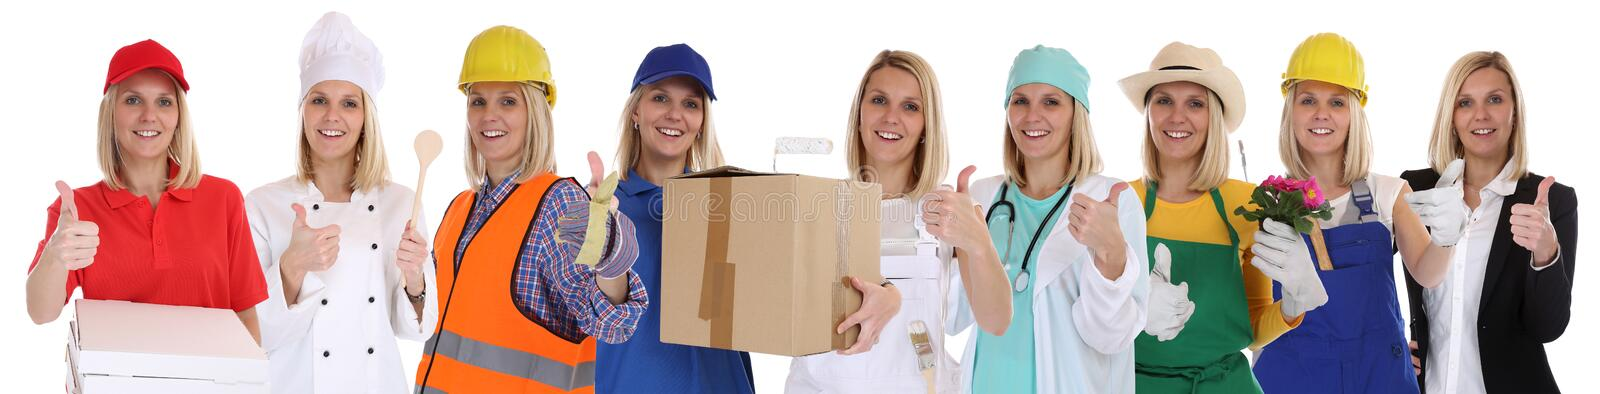 Group of people professions women business success successful ca royalty free stock photo